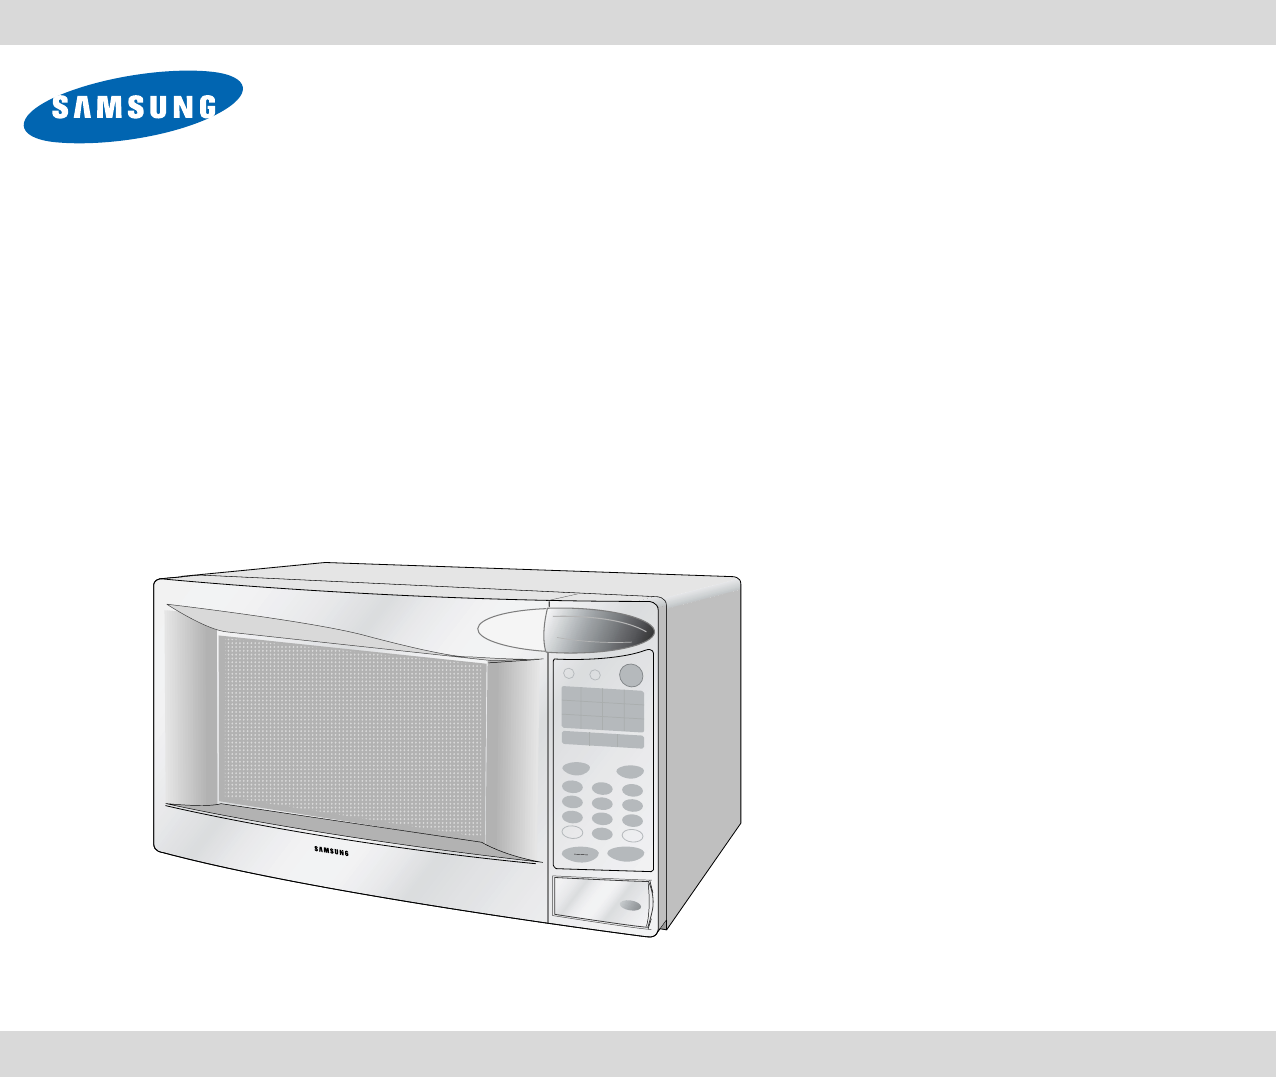 samsung microwave oven user manual pdf